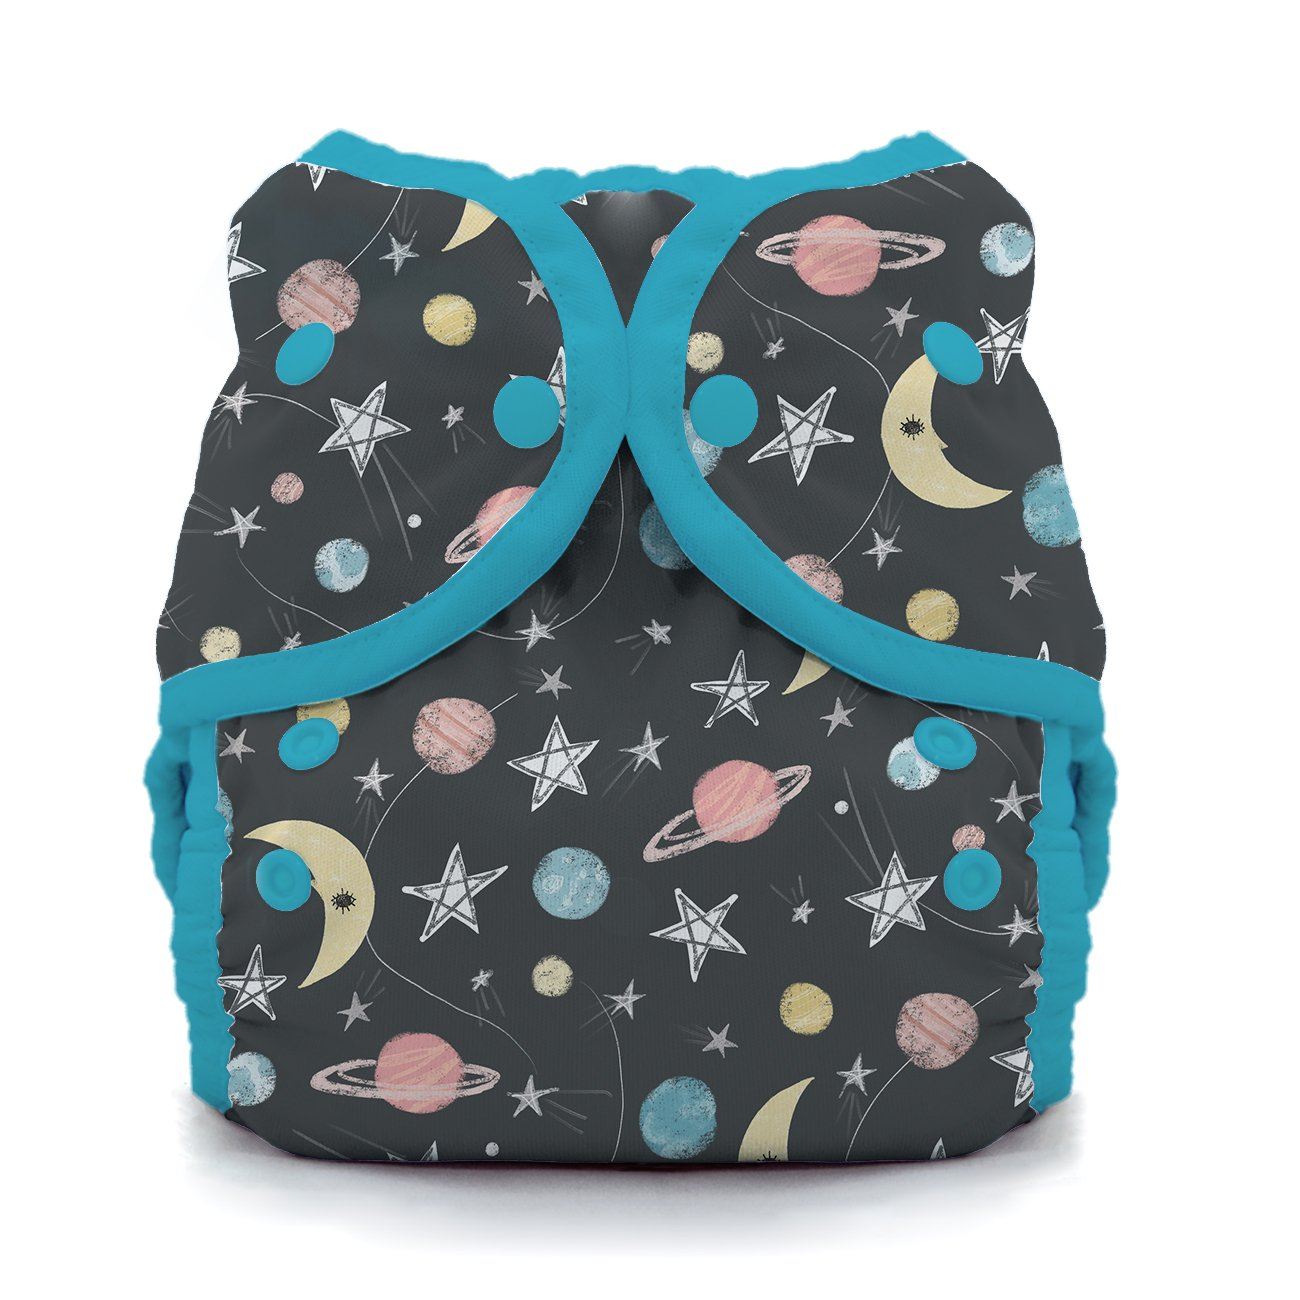 Snap Duo Wrap, Stargazer, Size One (6-18 lbs)